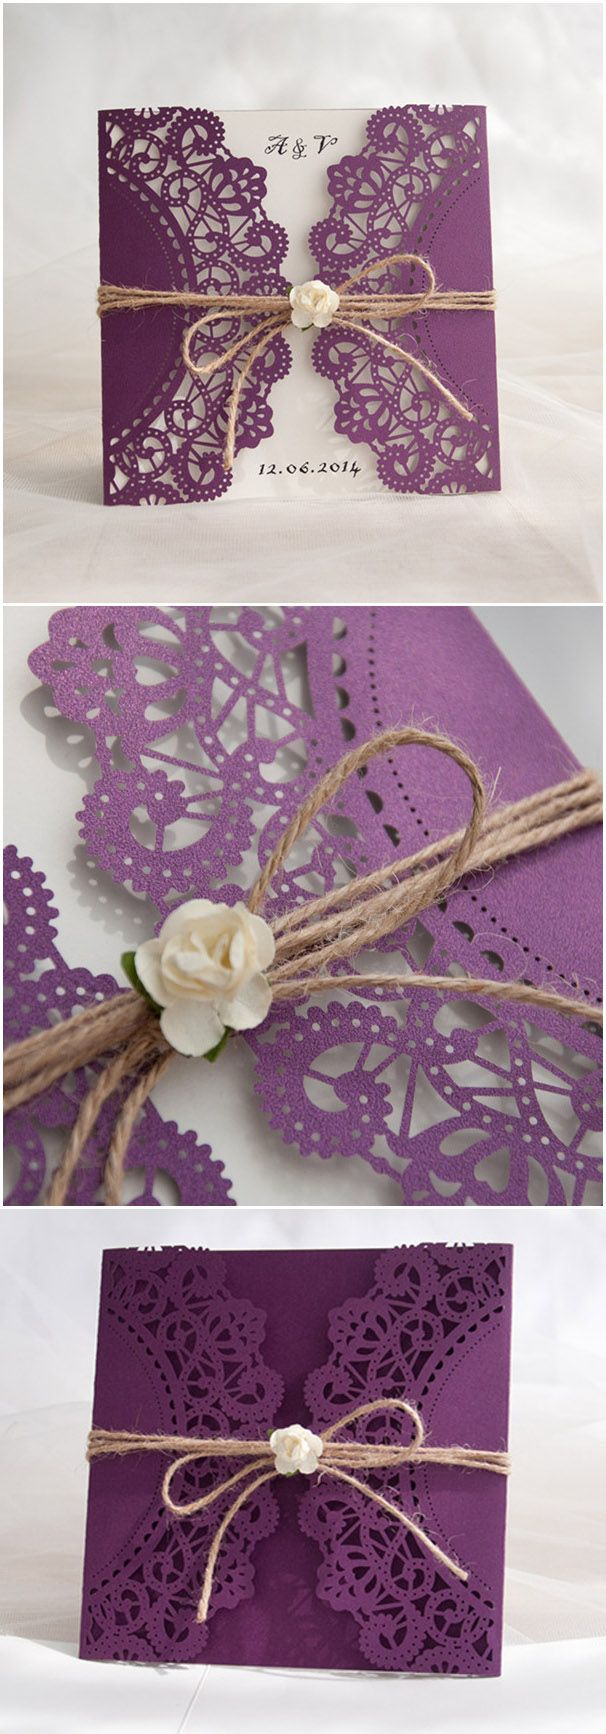 chic rustic purple laser cut wedding invitations for country wedding ideas